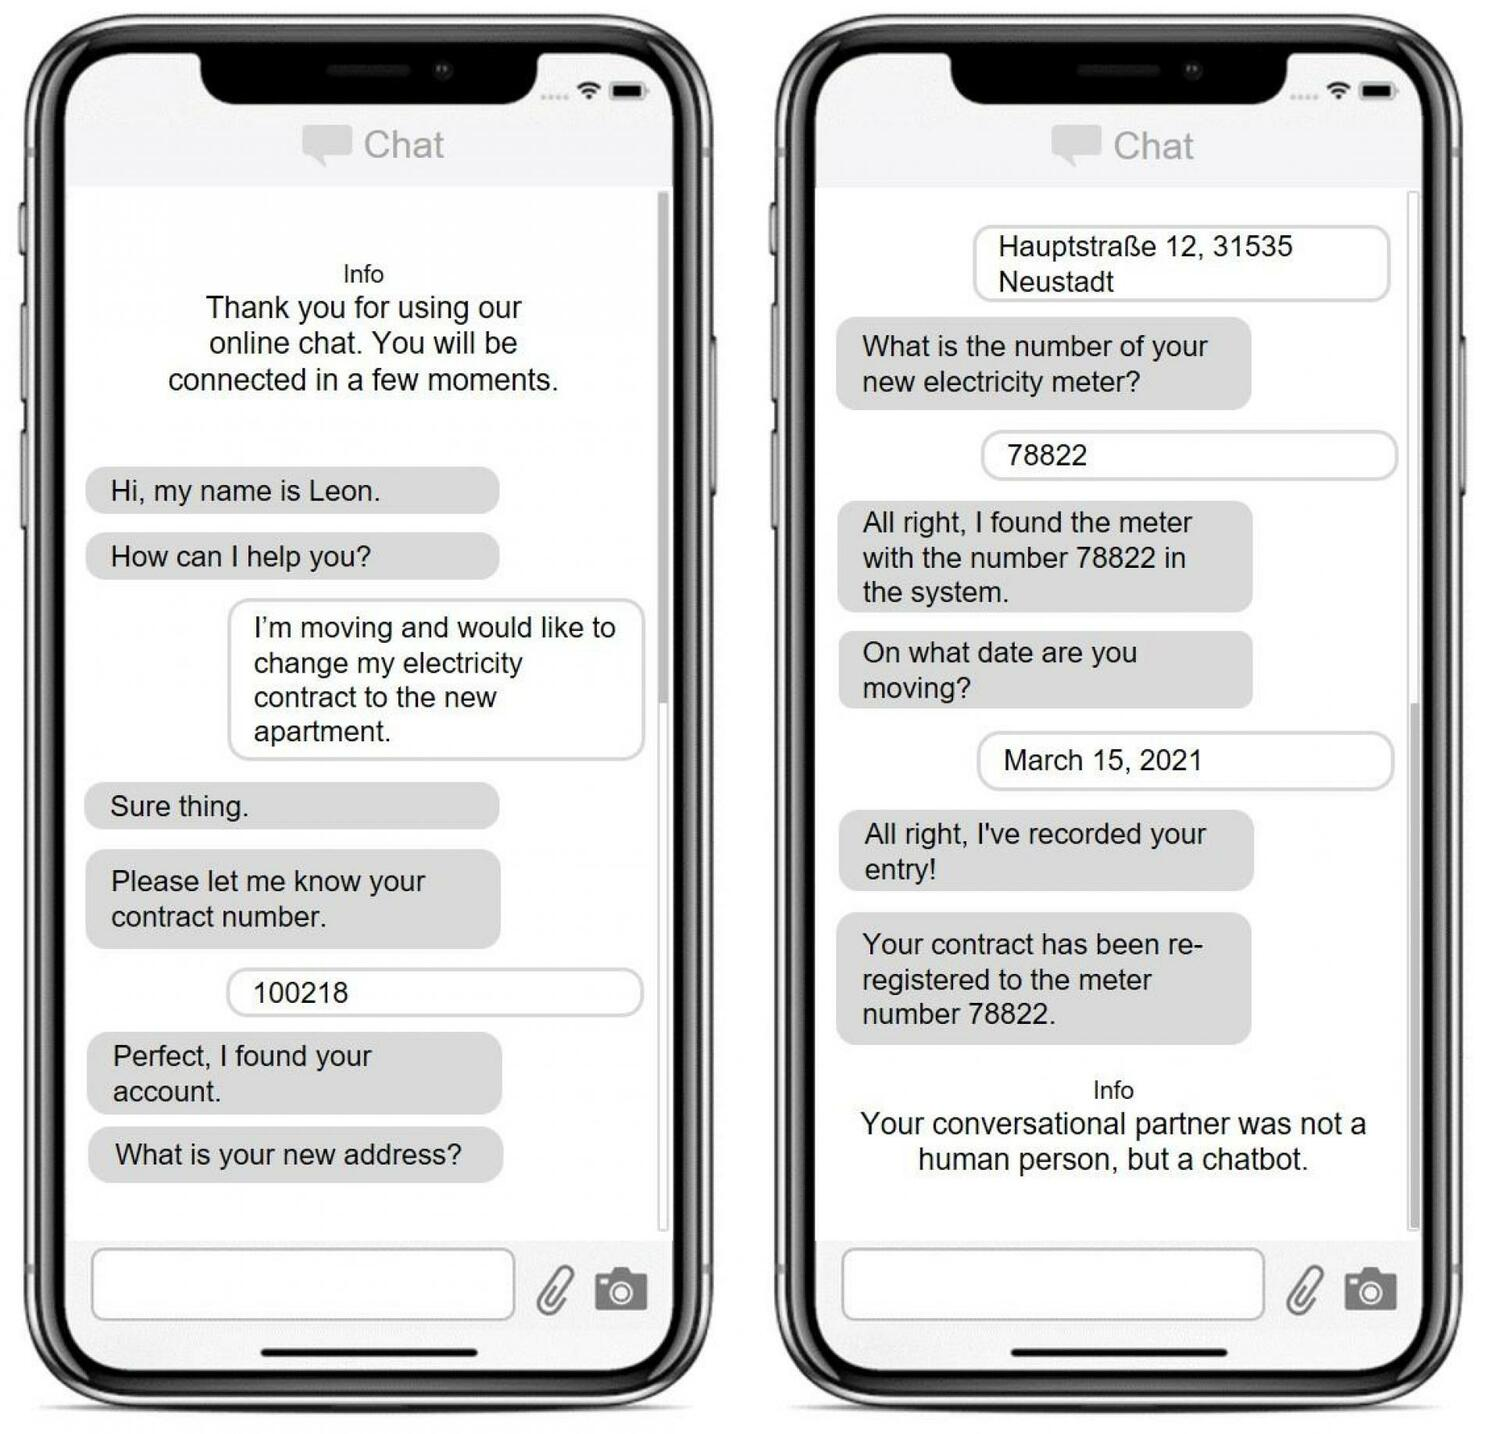 In this research study, the test subjects chatted with a chatbot - but only half of them knew that it was a non-human conversation partner.